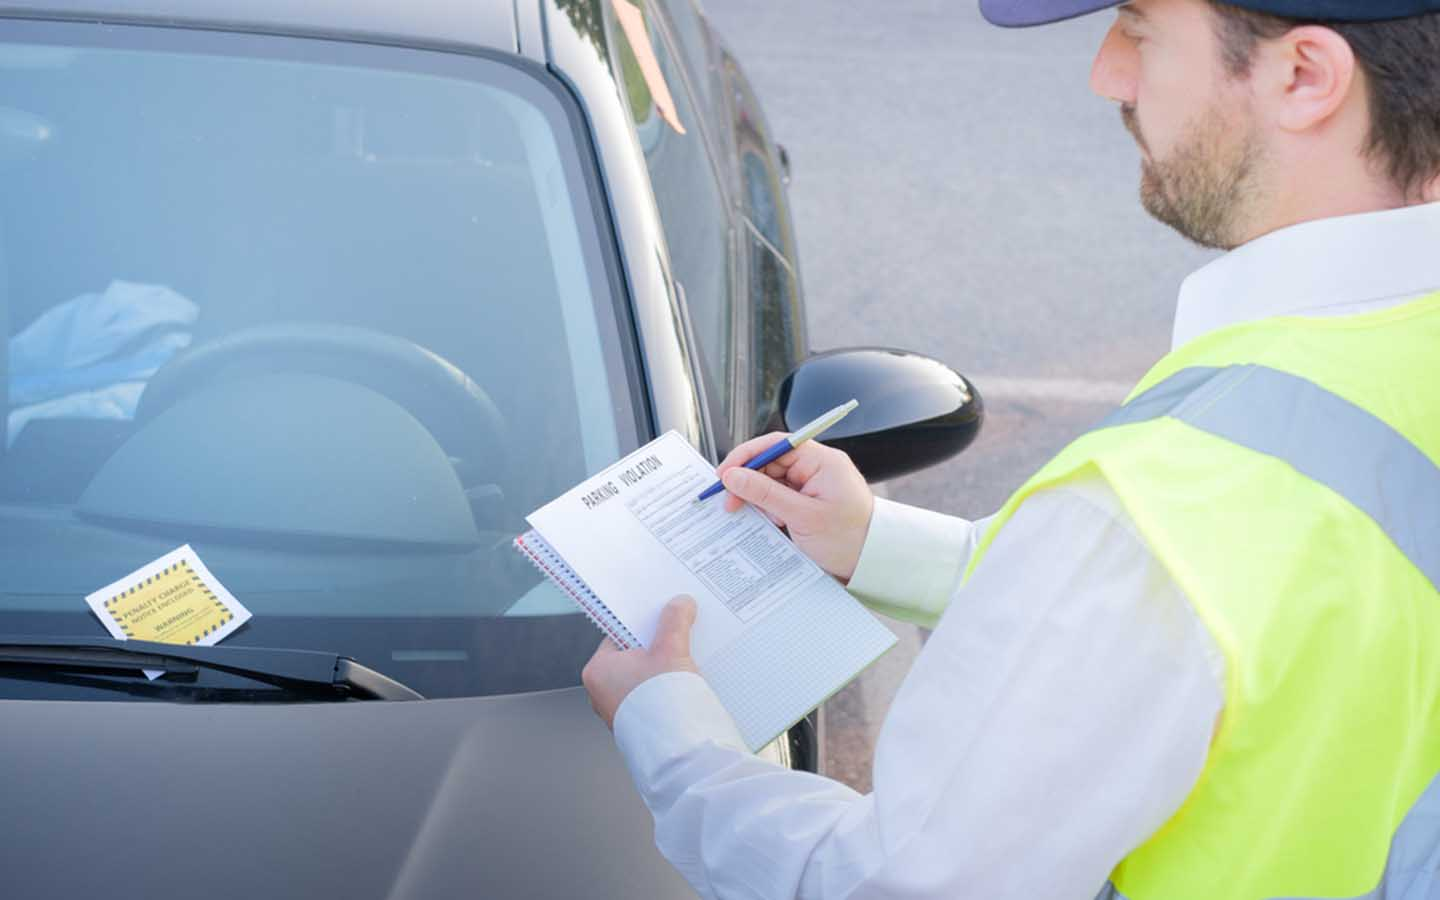 An officer writing a ticket, which one can confirm on check fines in Dubai websites